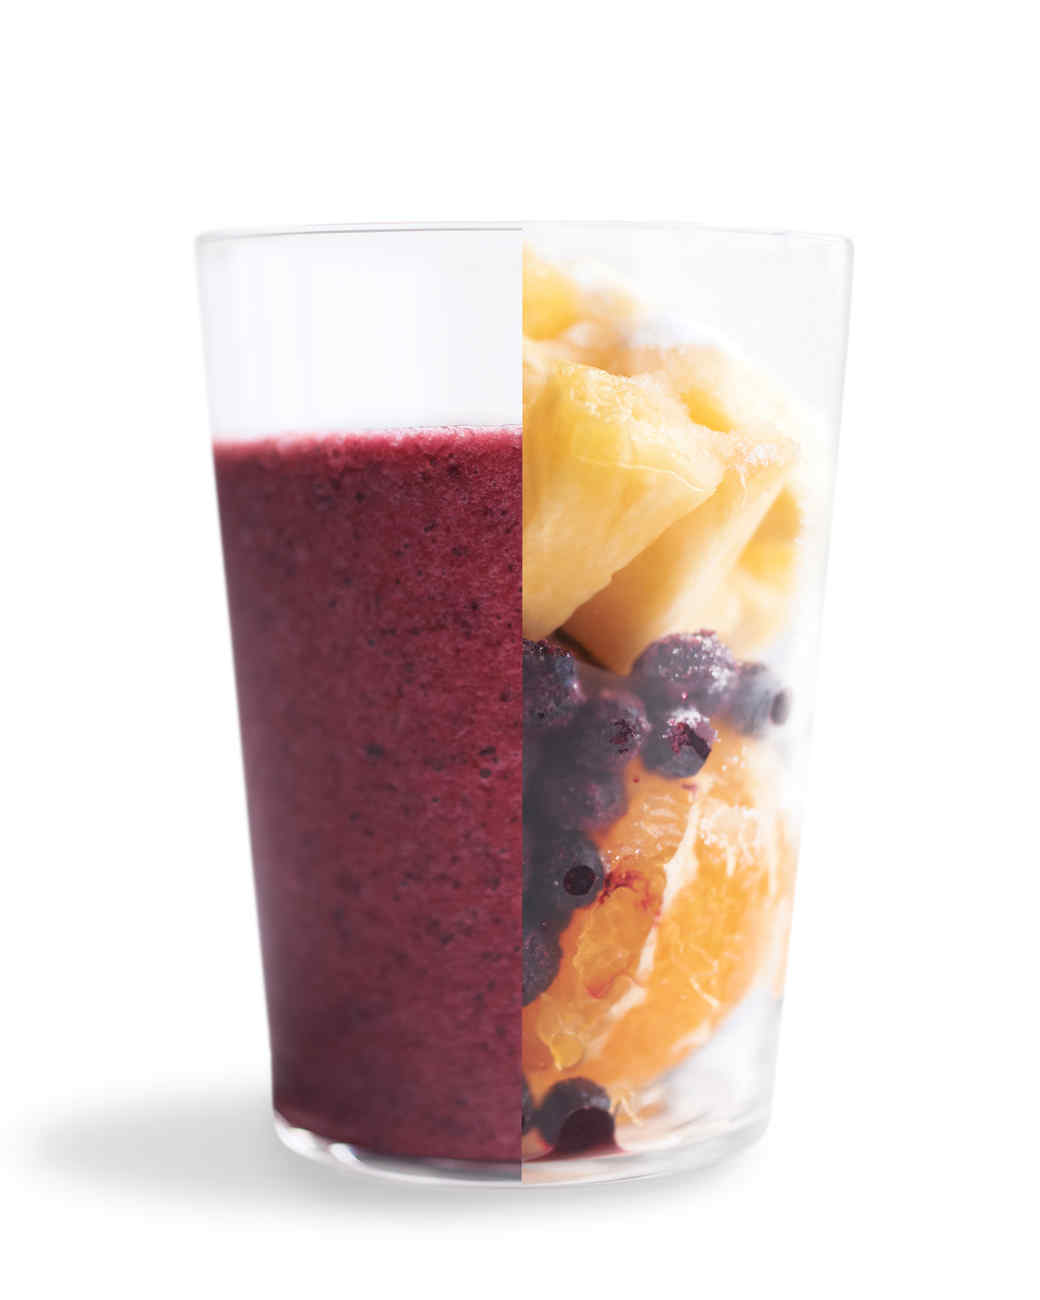 mixed-fruit-005-comp-med109451.jpg